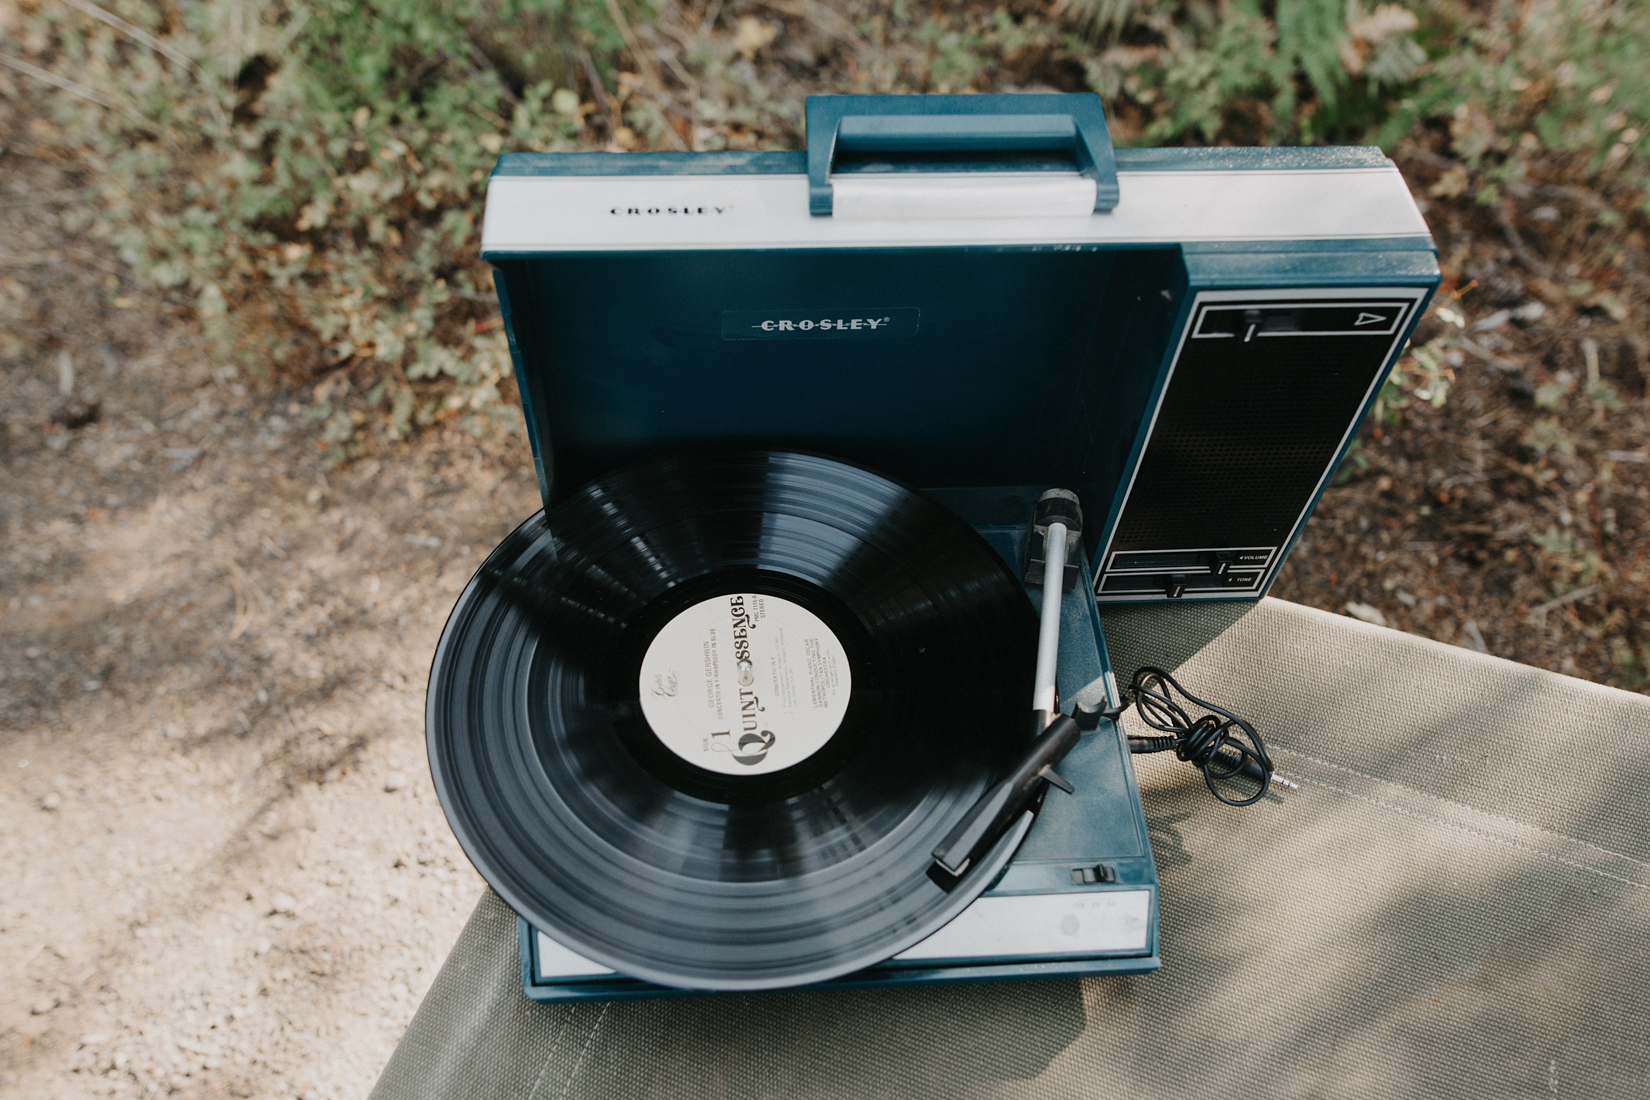 Vintage Record player setup at campground wedding in oregon